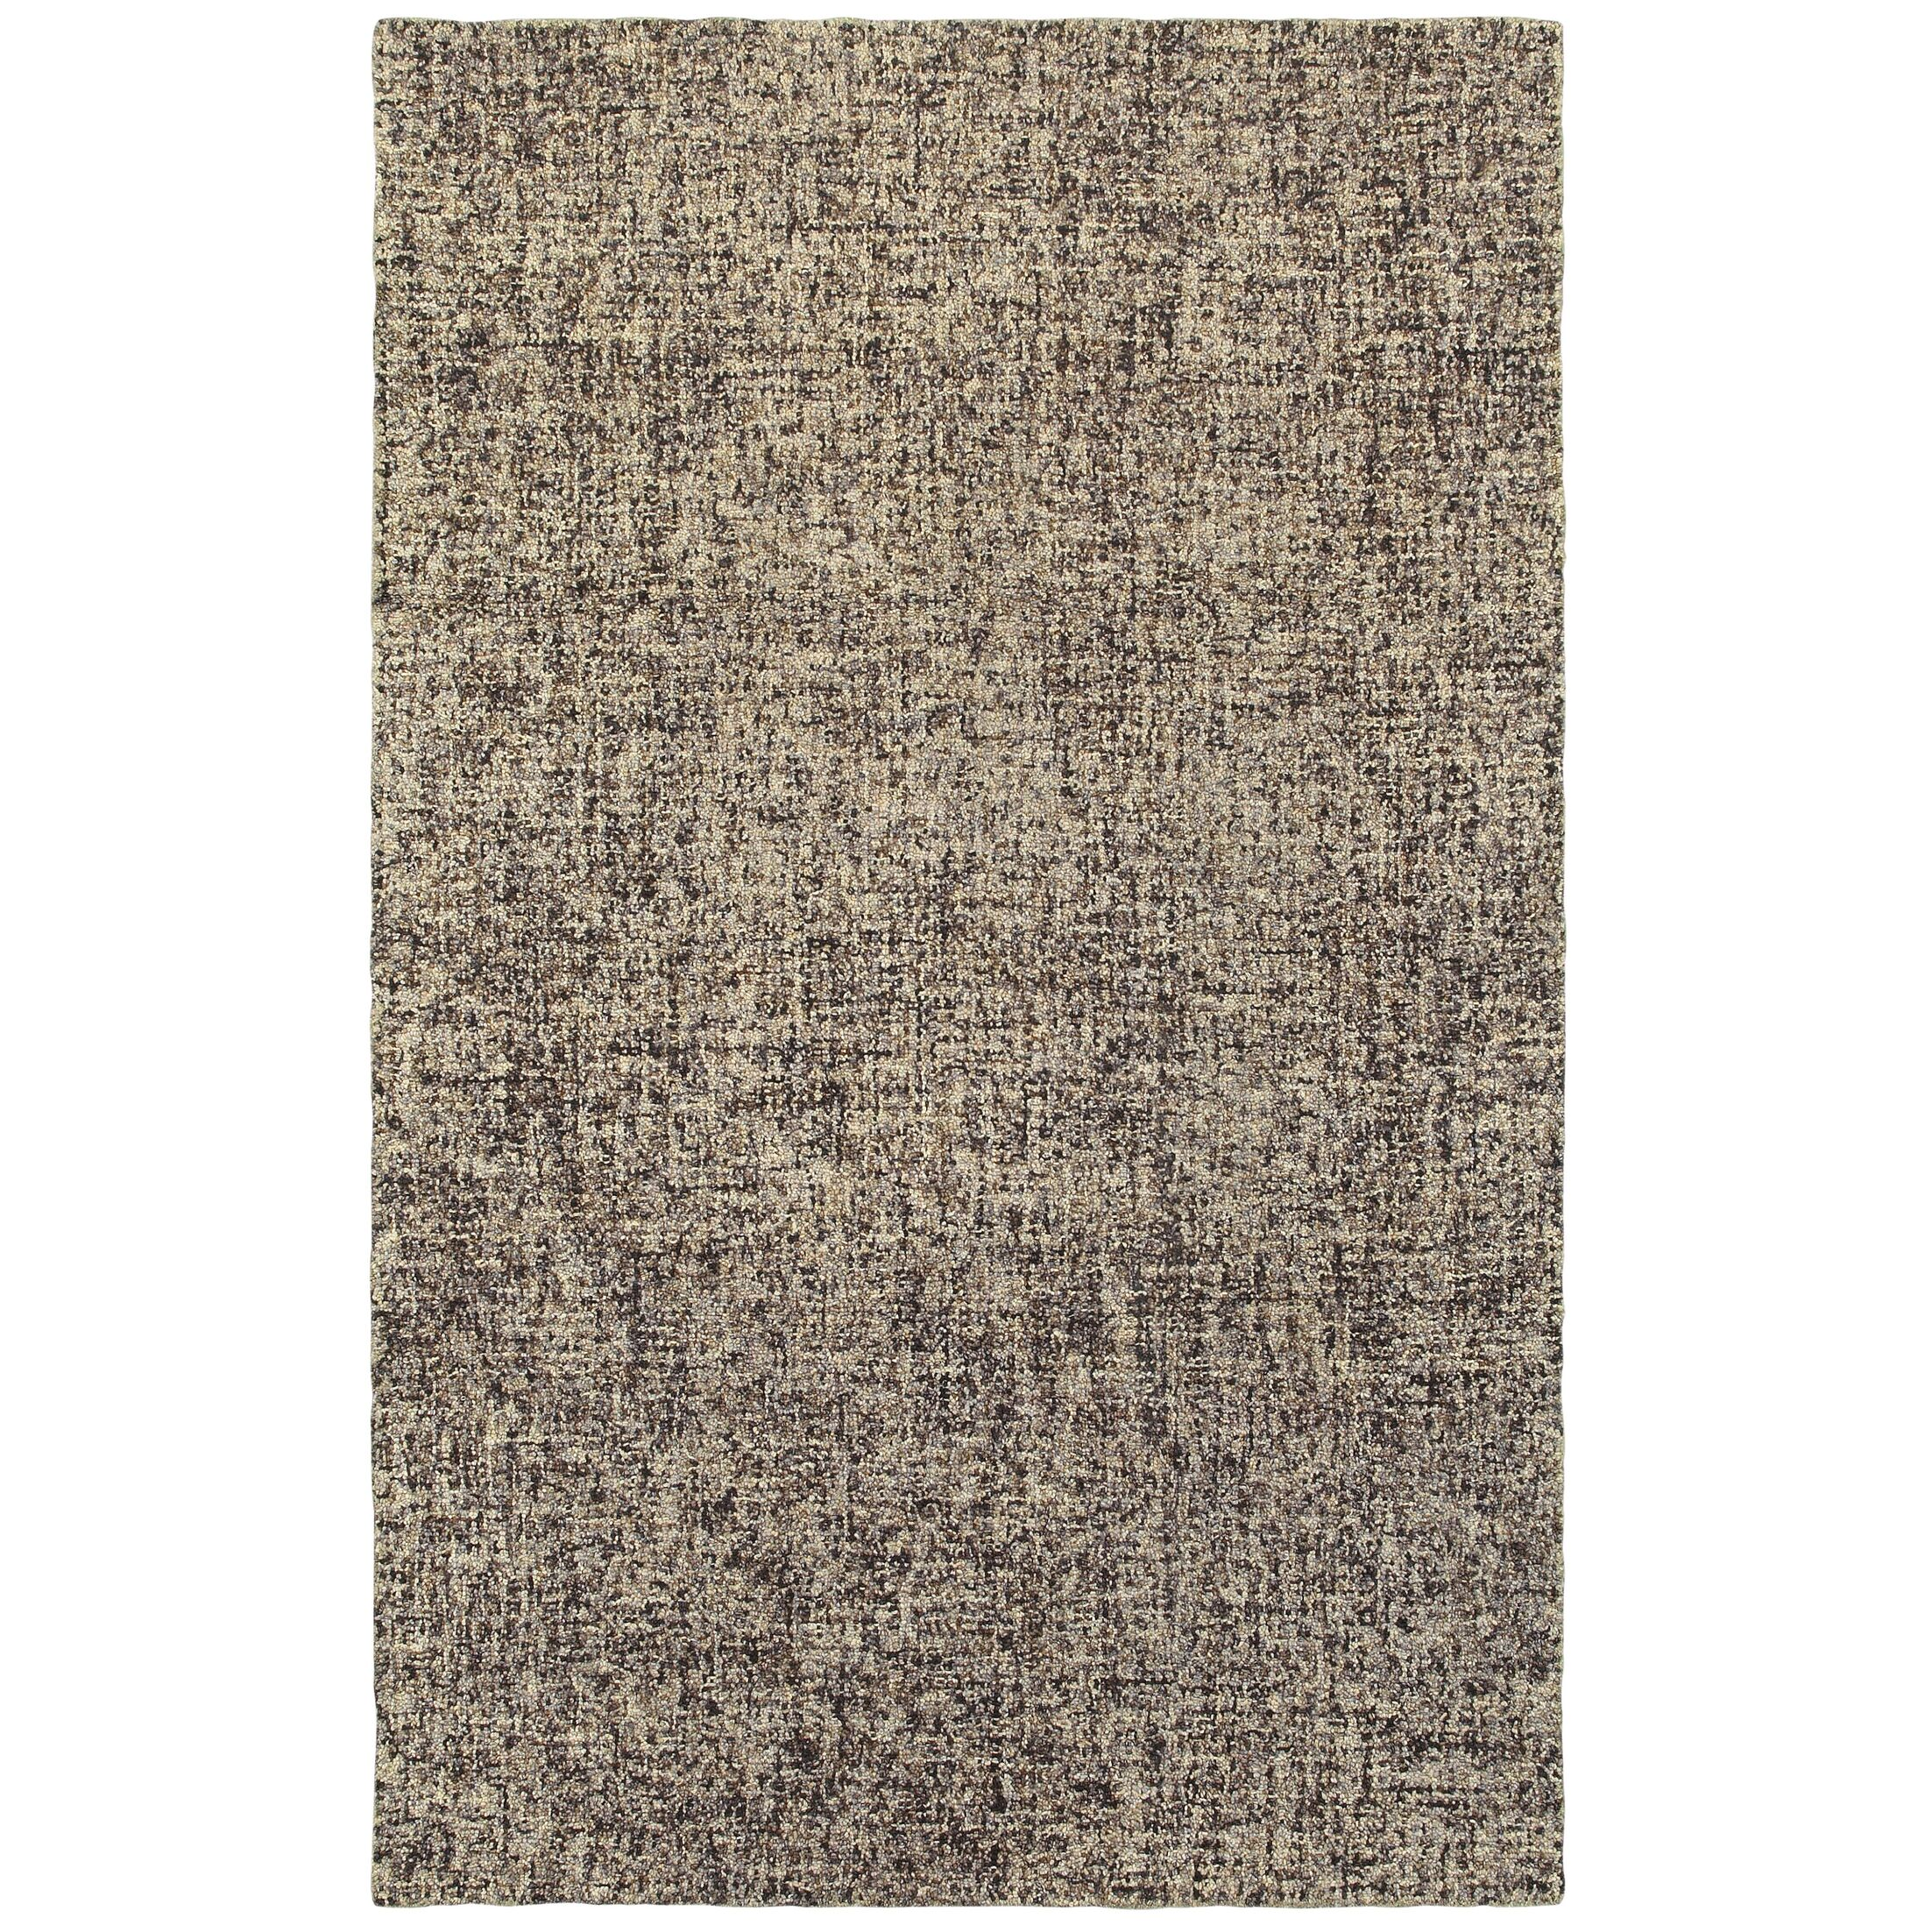 Laguerre Boucle Hand-Hooked Wool Black/Beige Area Rug Rug Size: Rectangle 5' x 8'